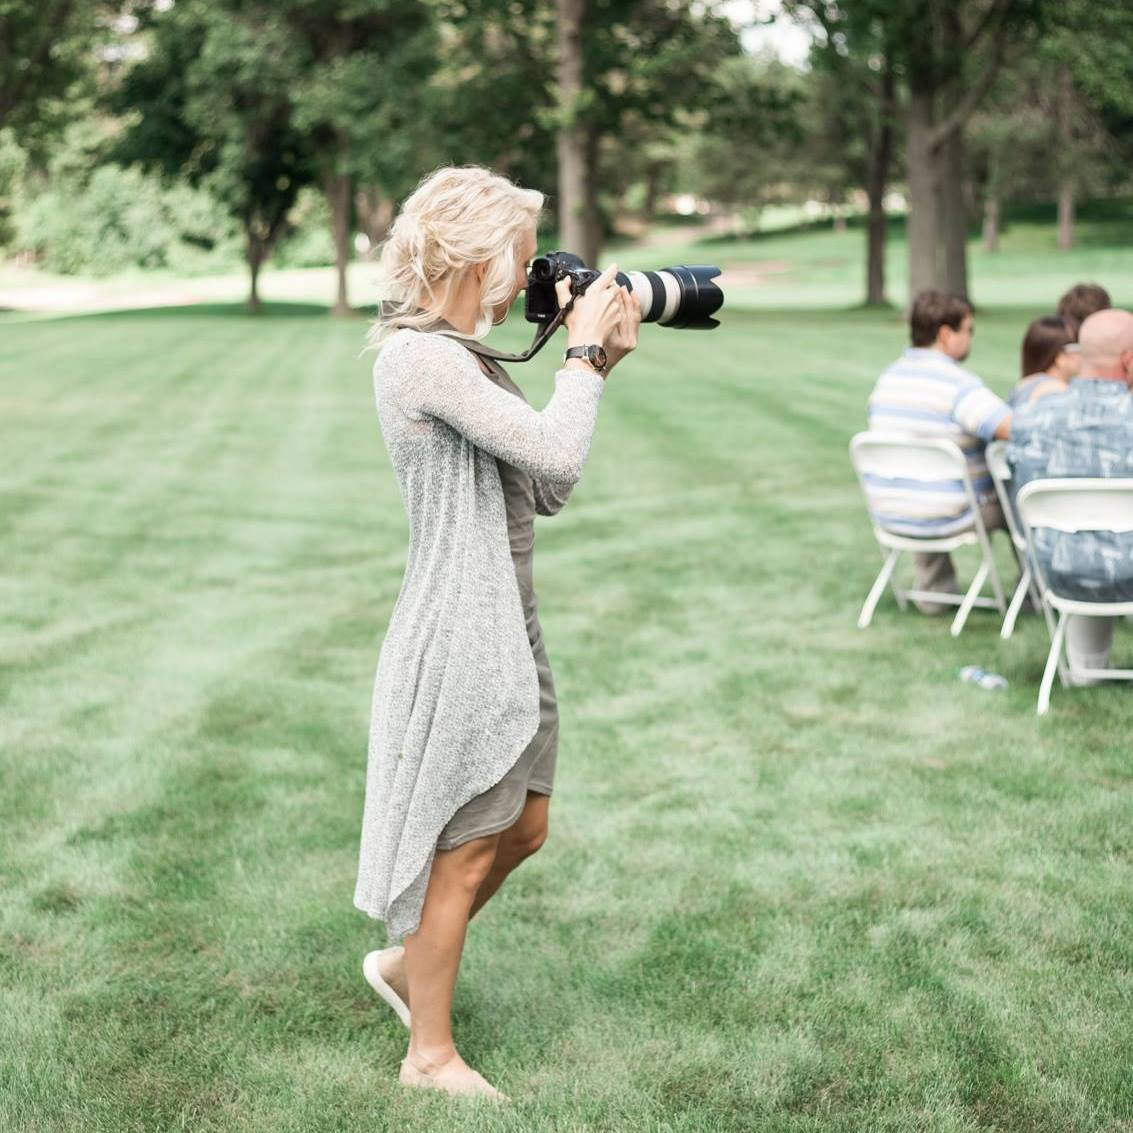 About Janimal Photography - photographer